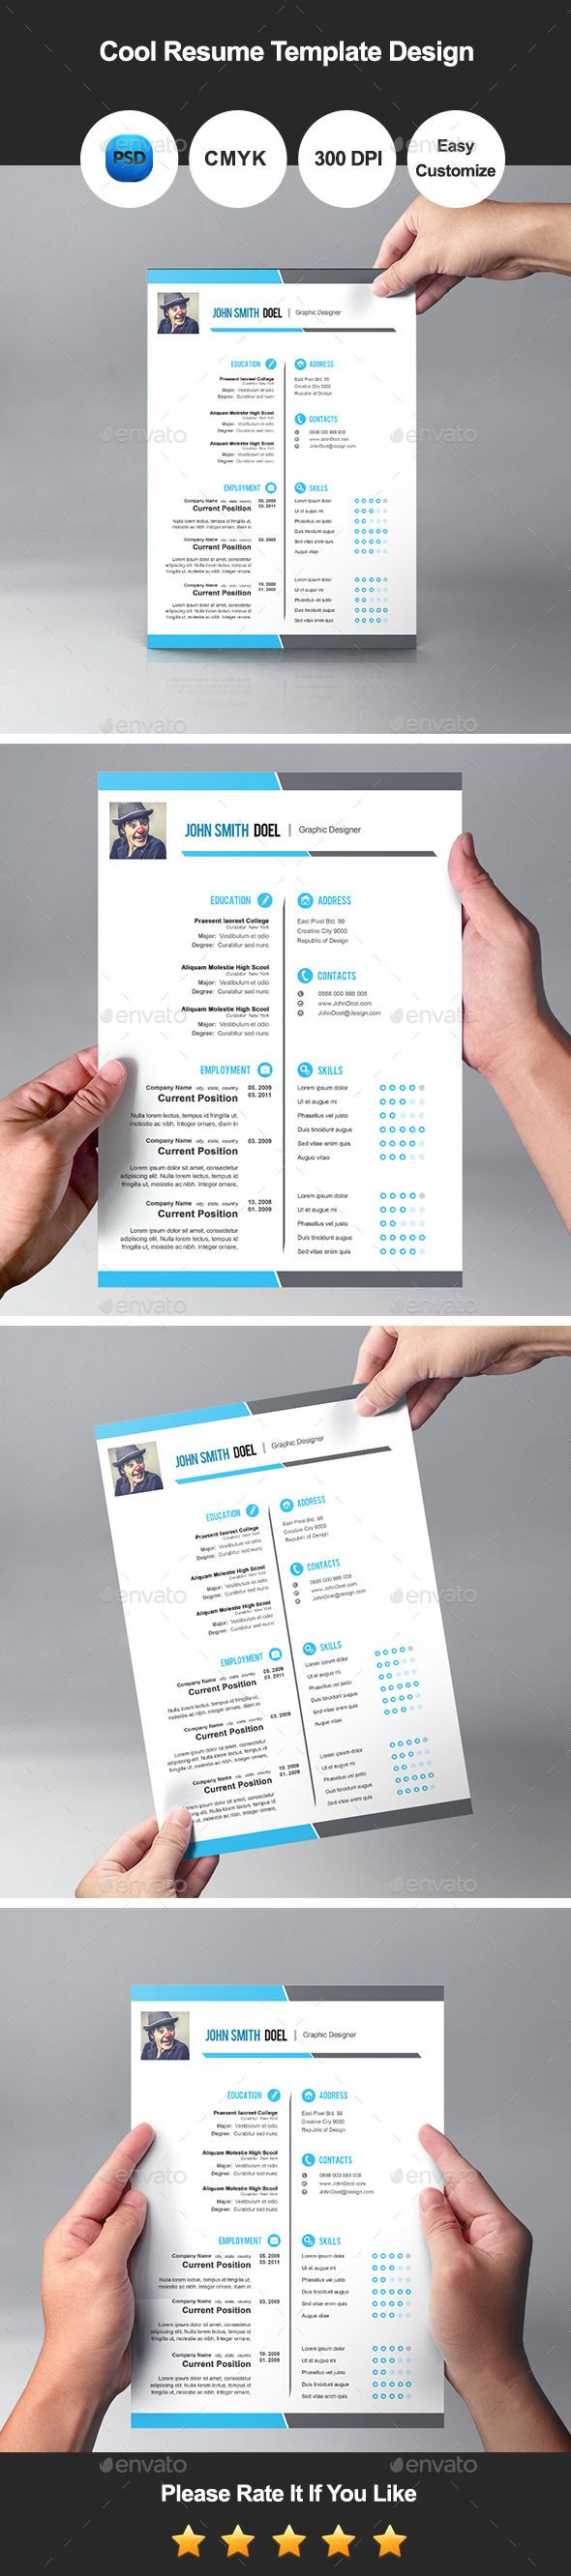 Premium Cool Resume Template Design  Design Resume Resume Cv And